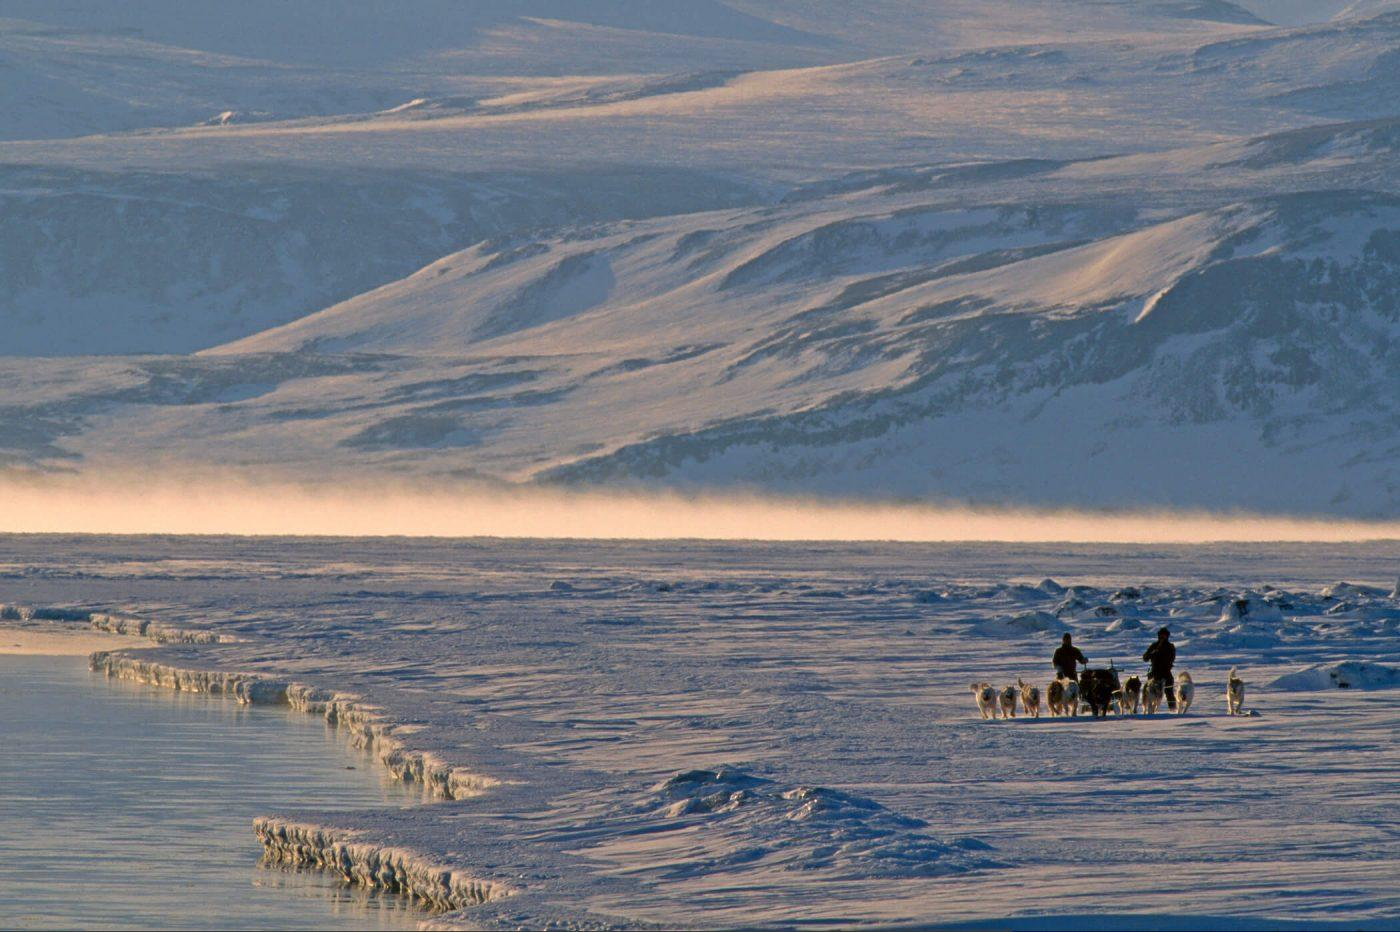 Dog sledding in the north east of Greenland. Photo by Magnus Elander